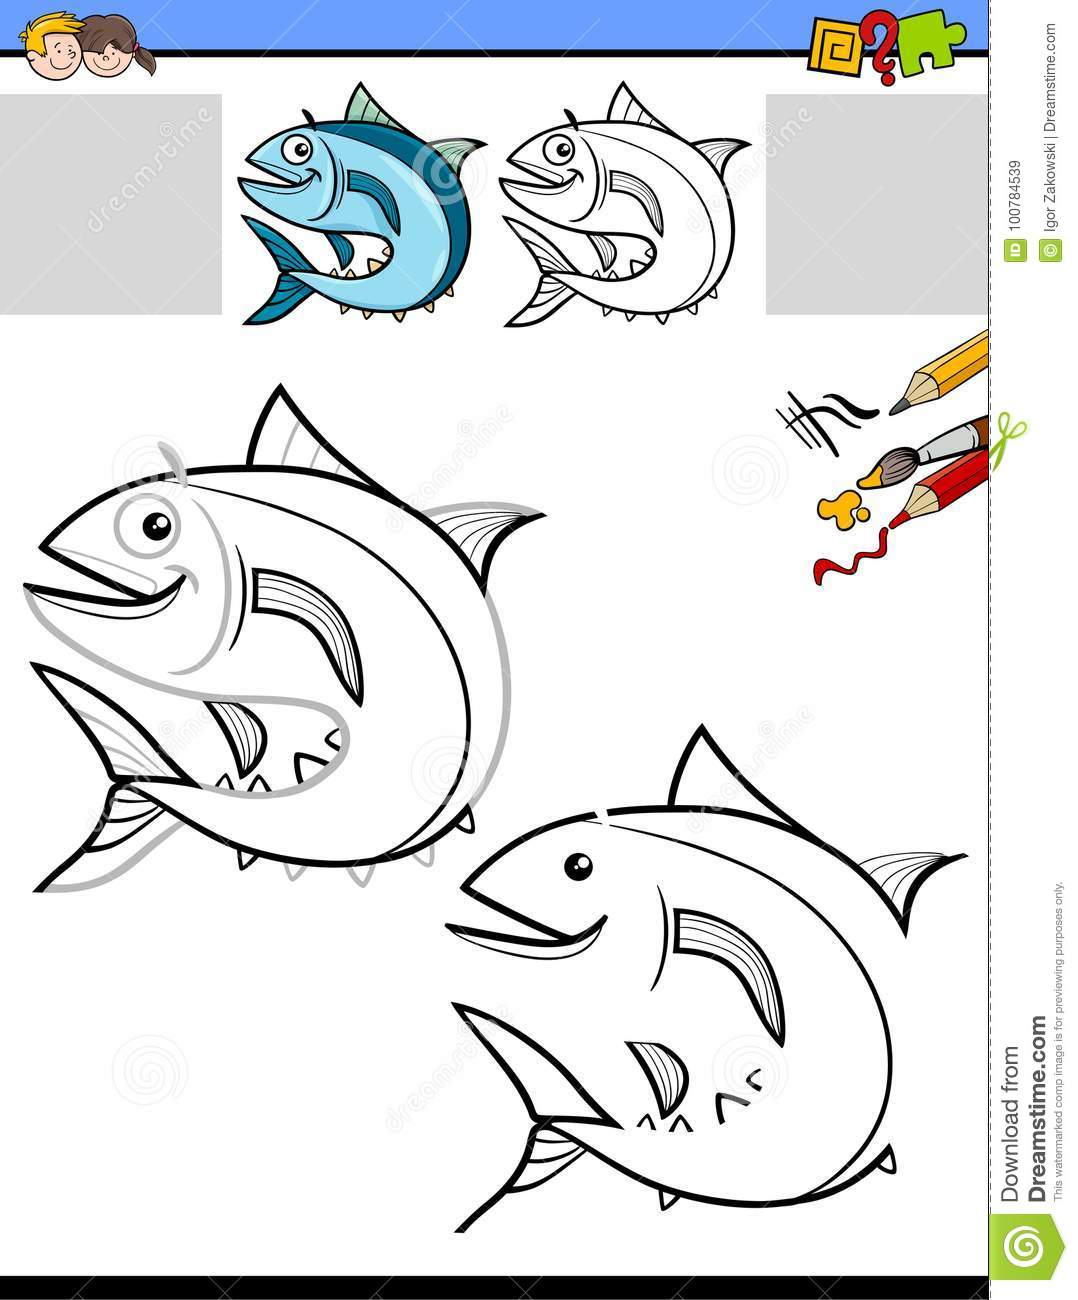 Drawing And Coloring Worksheet With Fish Stock Vector